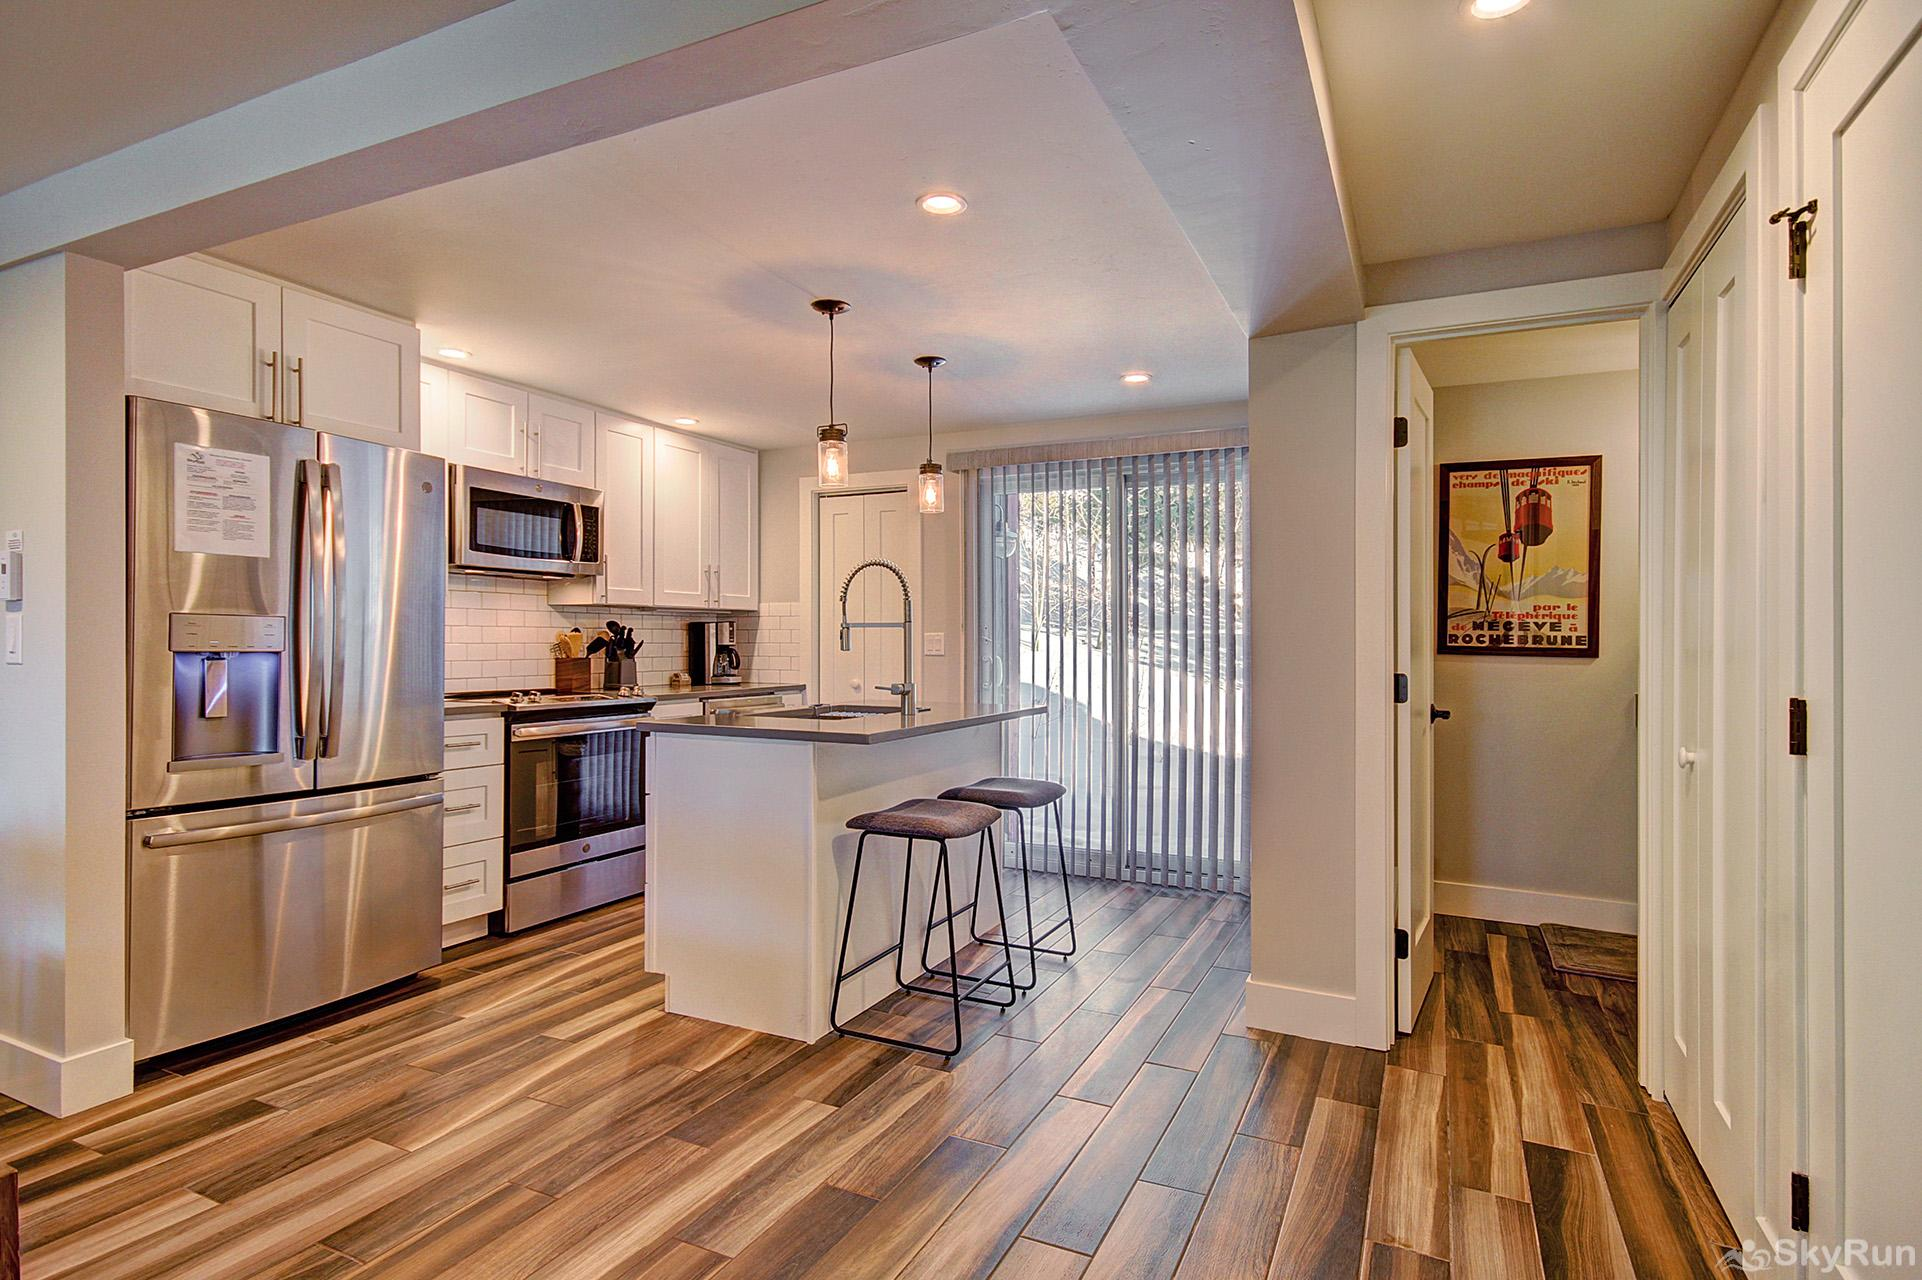 First Last Chance Large kitchen with modern stainless steel appliances